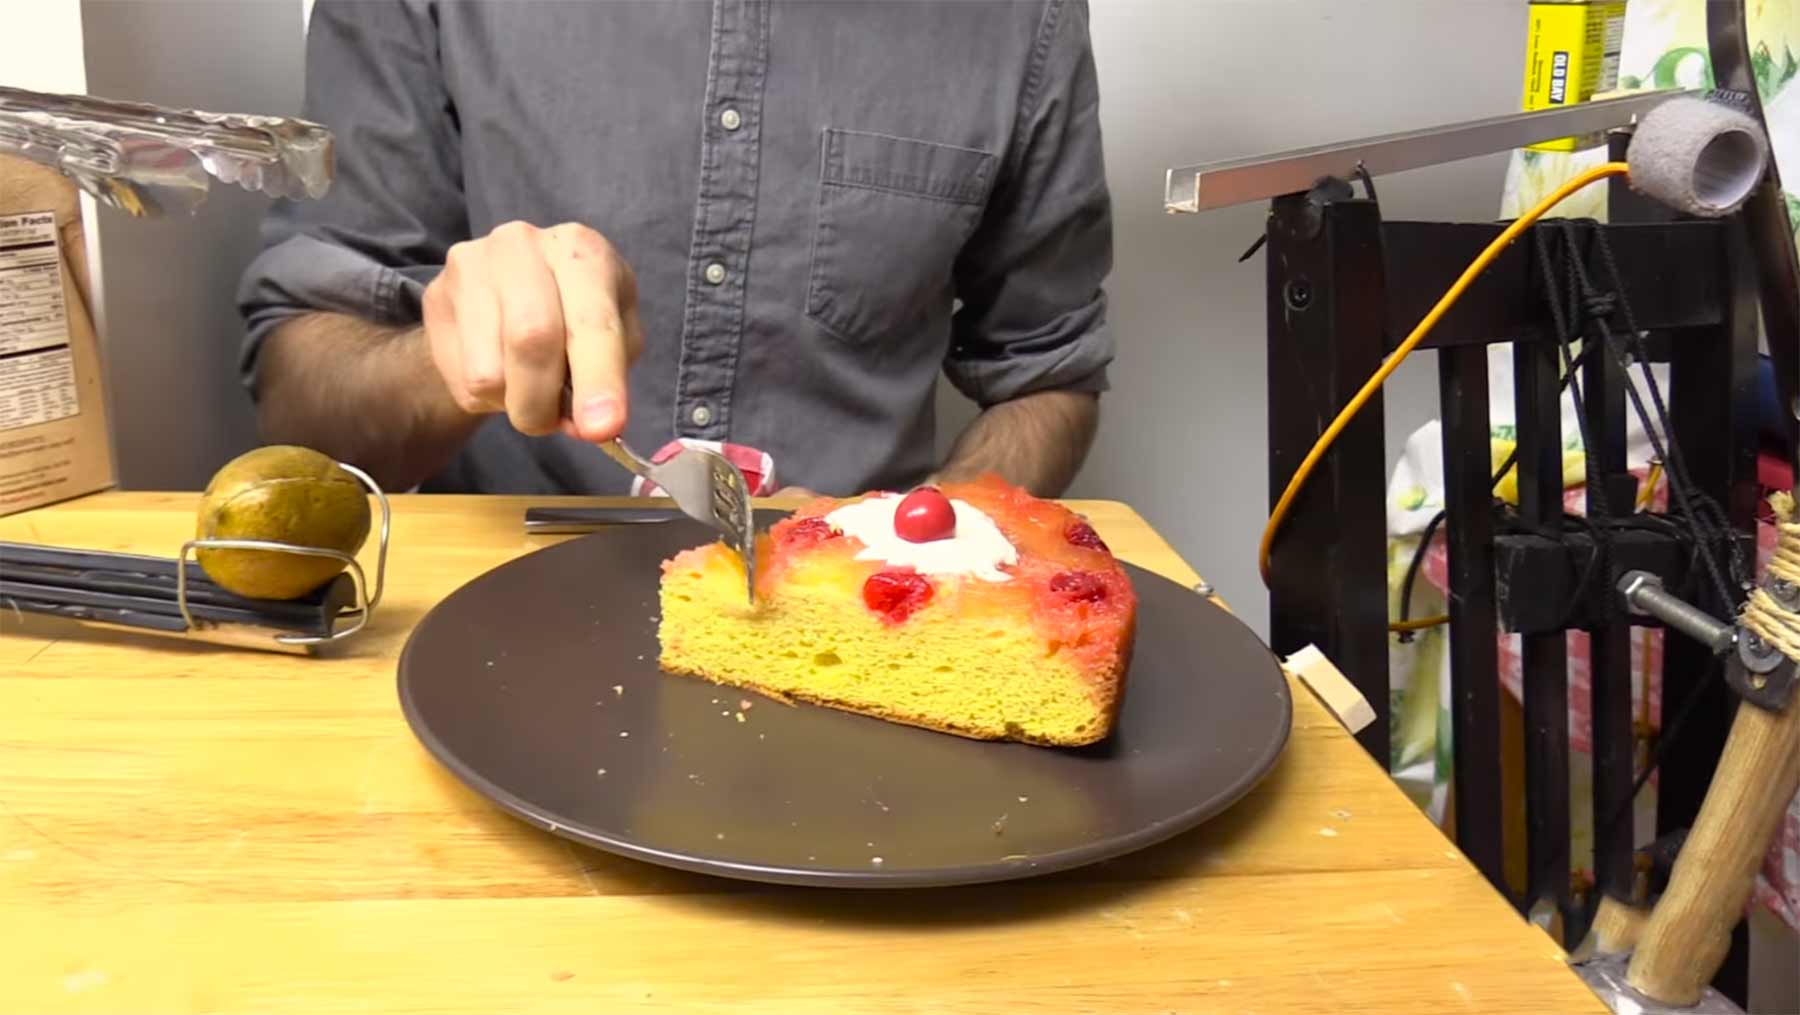 Kuchen-servierende Rube Goldberg Machine